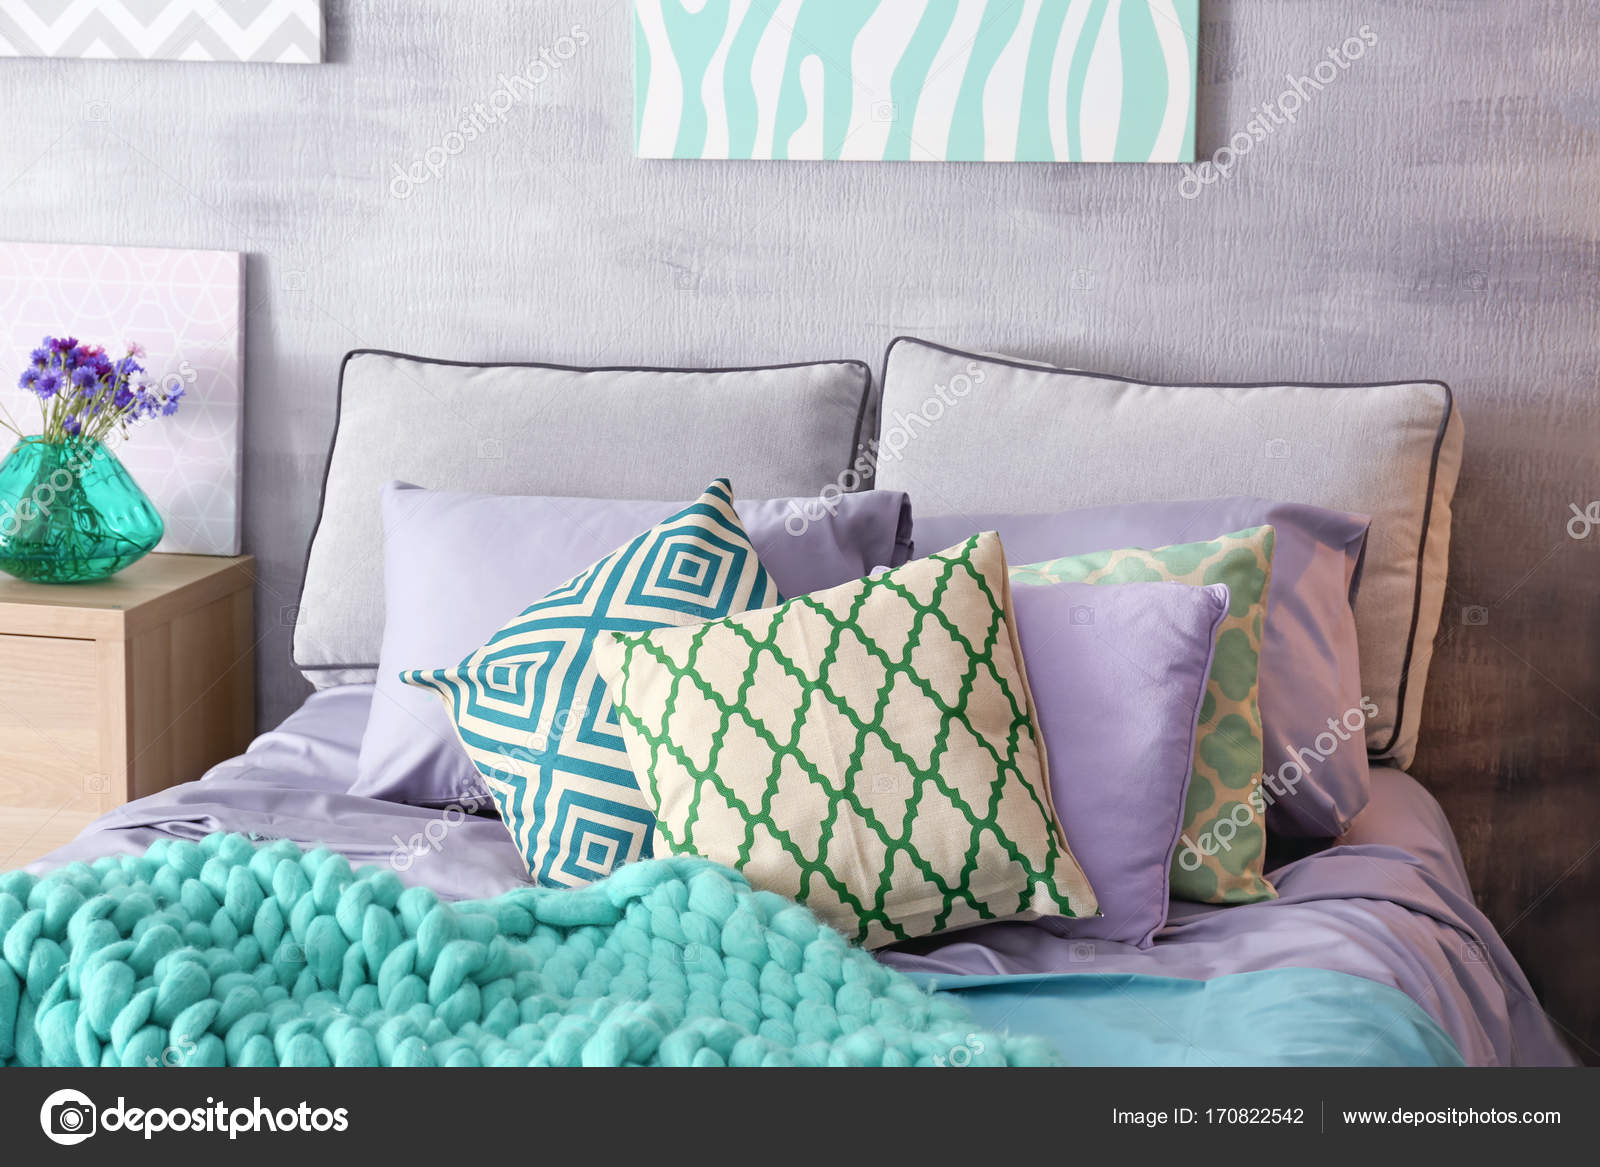 Superb Lilac Accent In Modern Interior Comfortable Bed With Download Free Architecture Designs Photstoregrimeyleaguecom